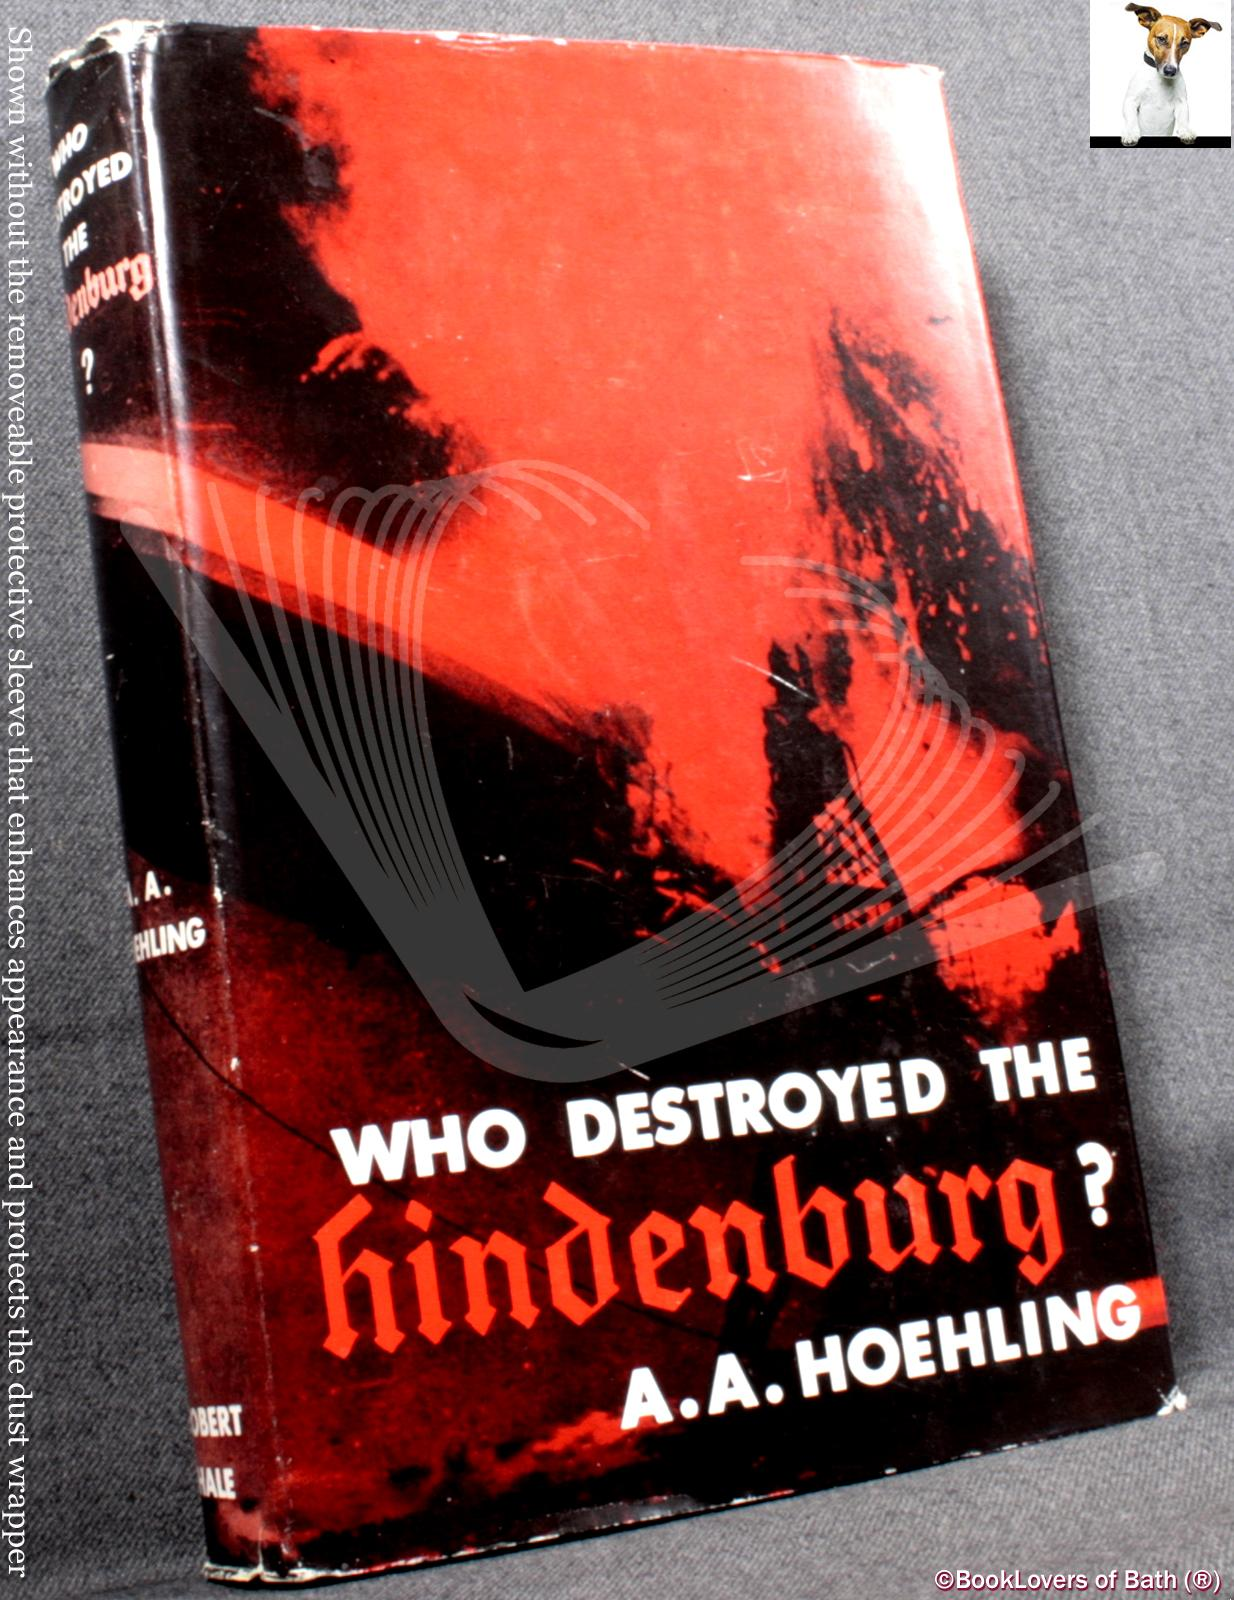 Who Destroyed the Hindenburg? - A. A. Hoehling